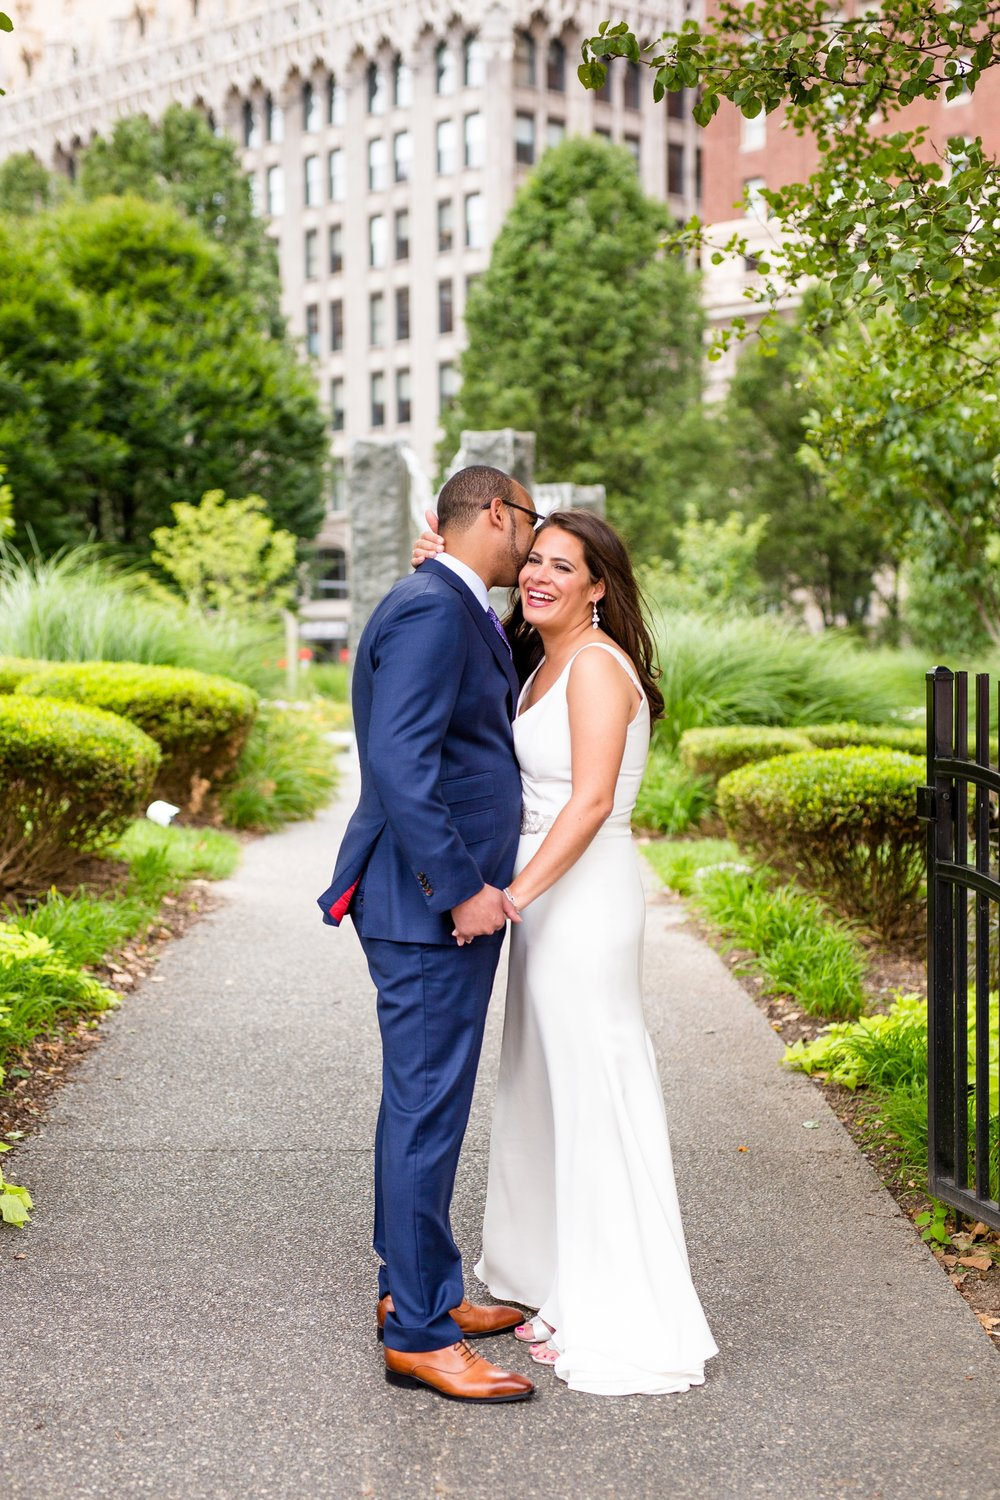 the pennsylvanian wedding photos, pittsburgh wedding venues, downtown pittsburgh wedding pictures, best locations for photoshoot in pittsburgh, the best pittsburgh wedding photographers